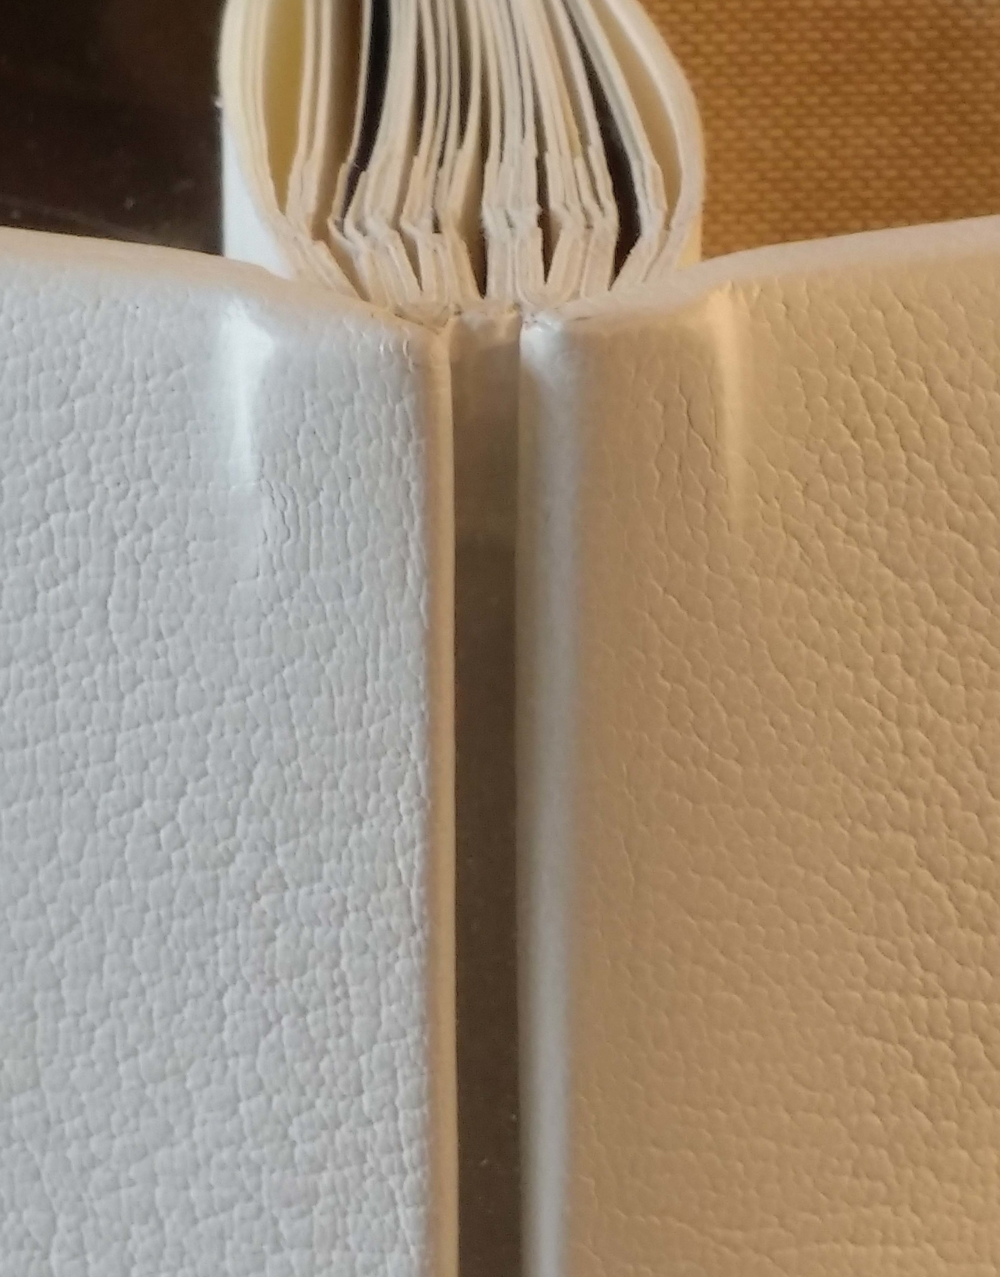 """Ethan Ensign. """"Lap-back"""" binding. Have never seen one in person before. I like the board's texture here, and overall of course I like the white. Decent photo  here ."""